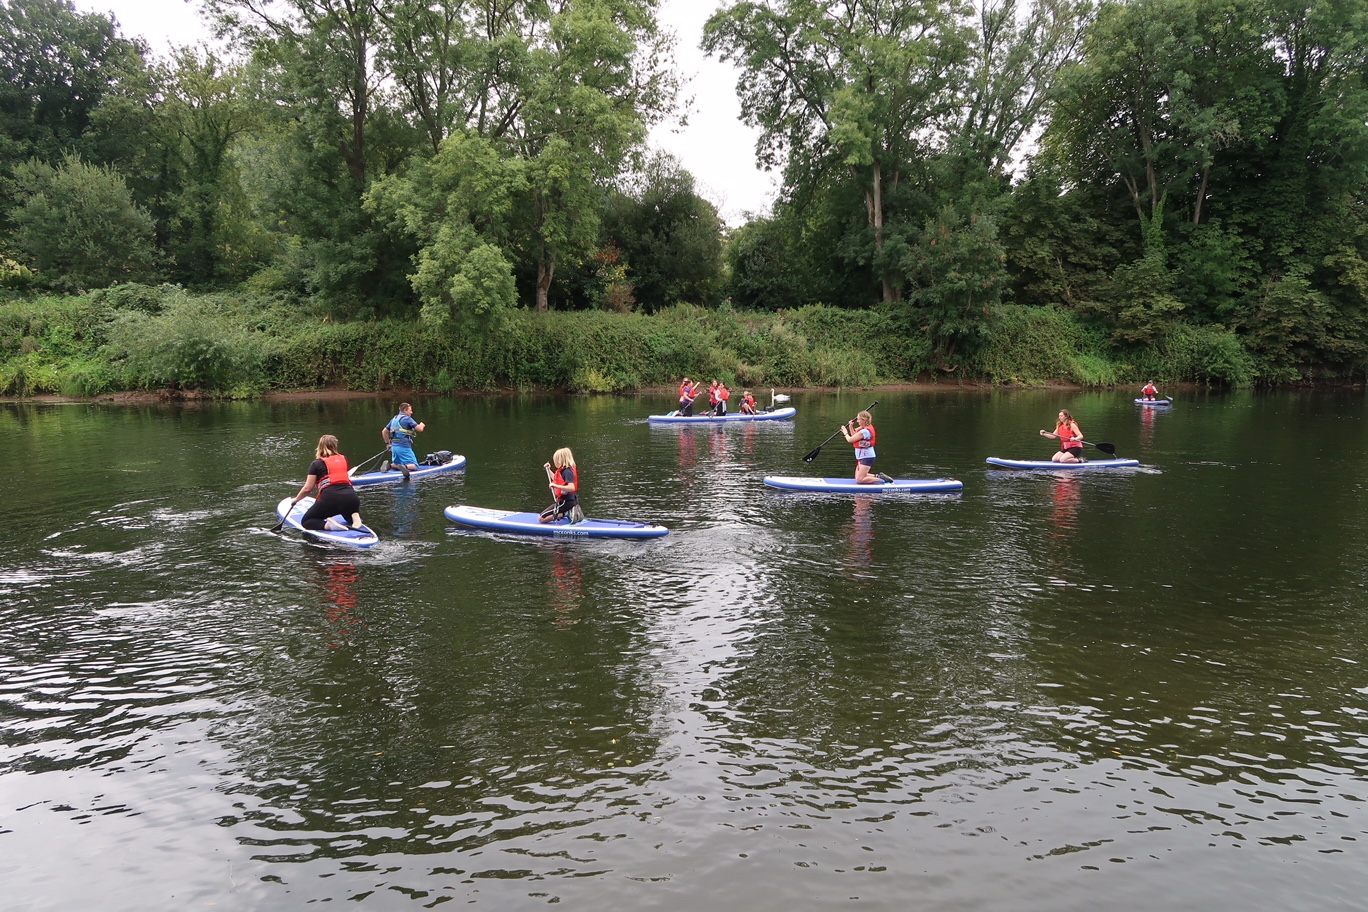 Paddle boarding on the River Wye in Monmouth